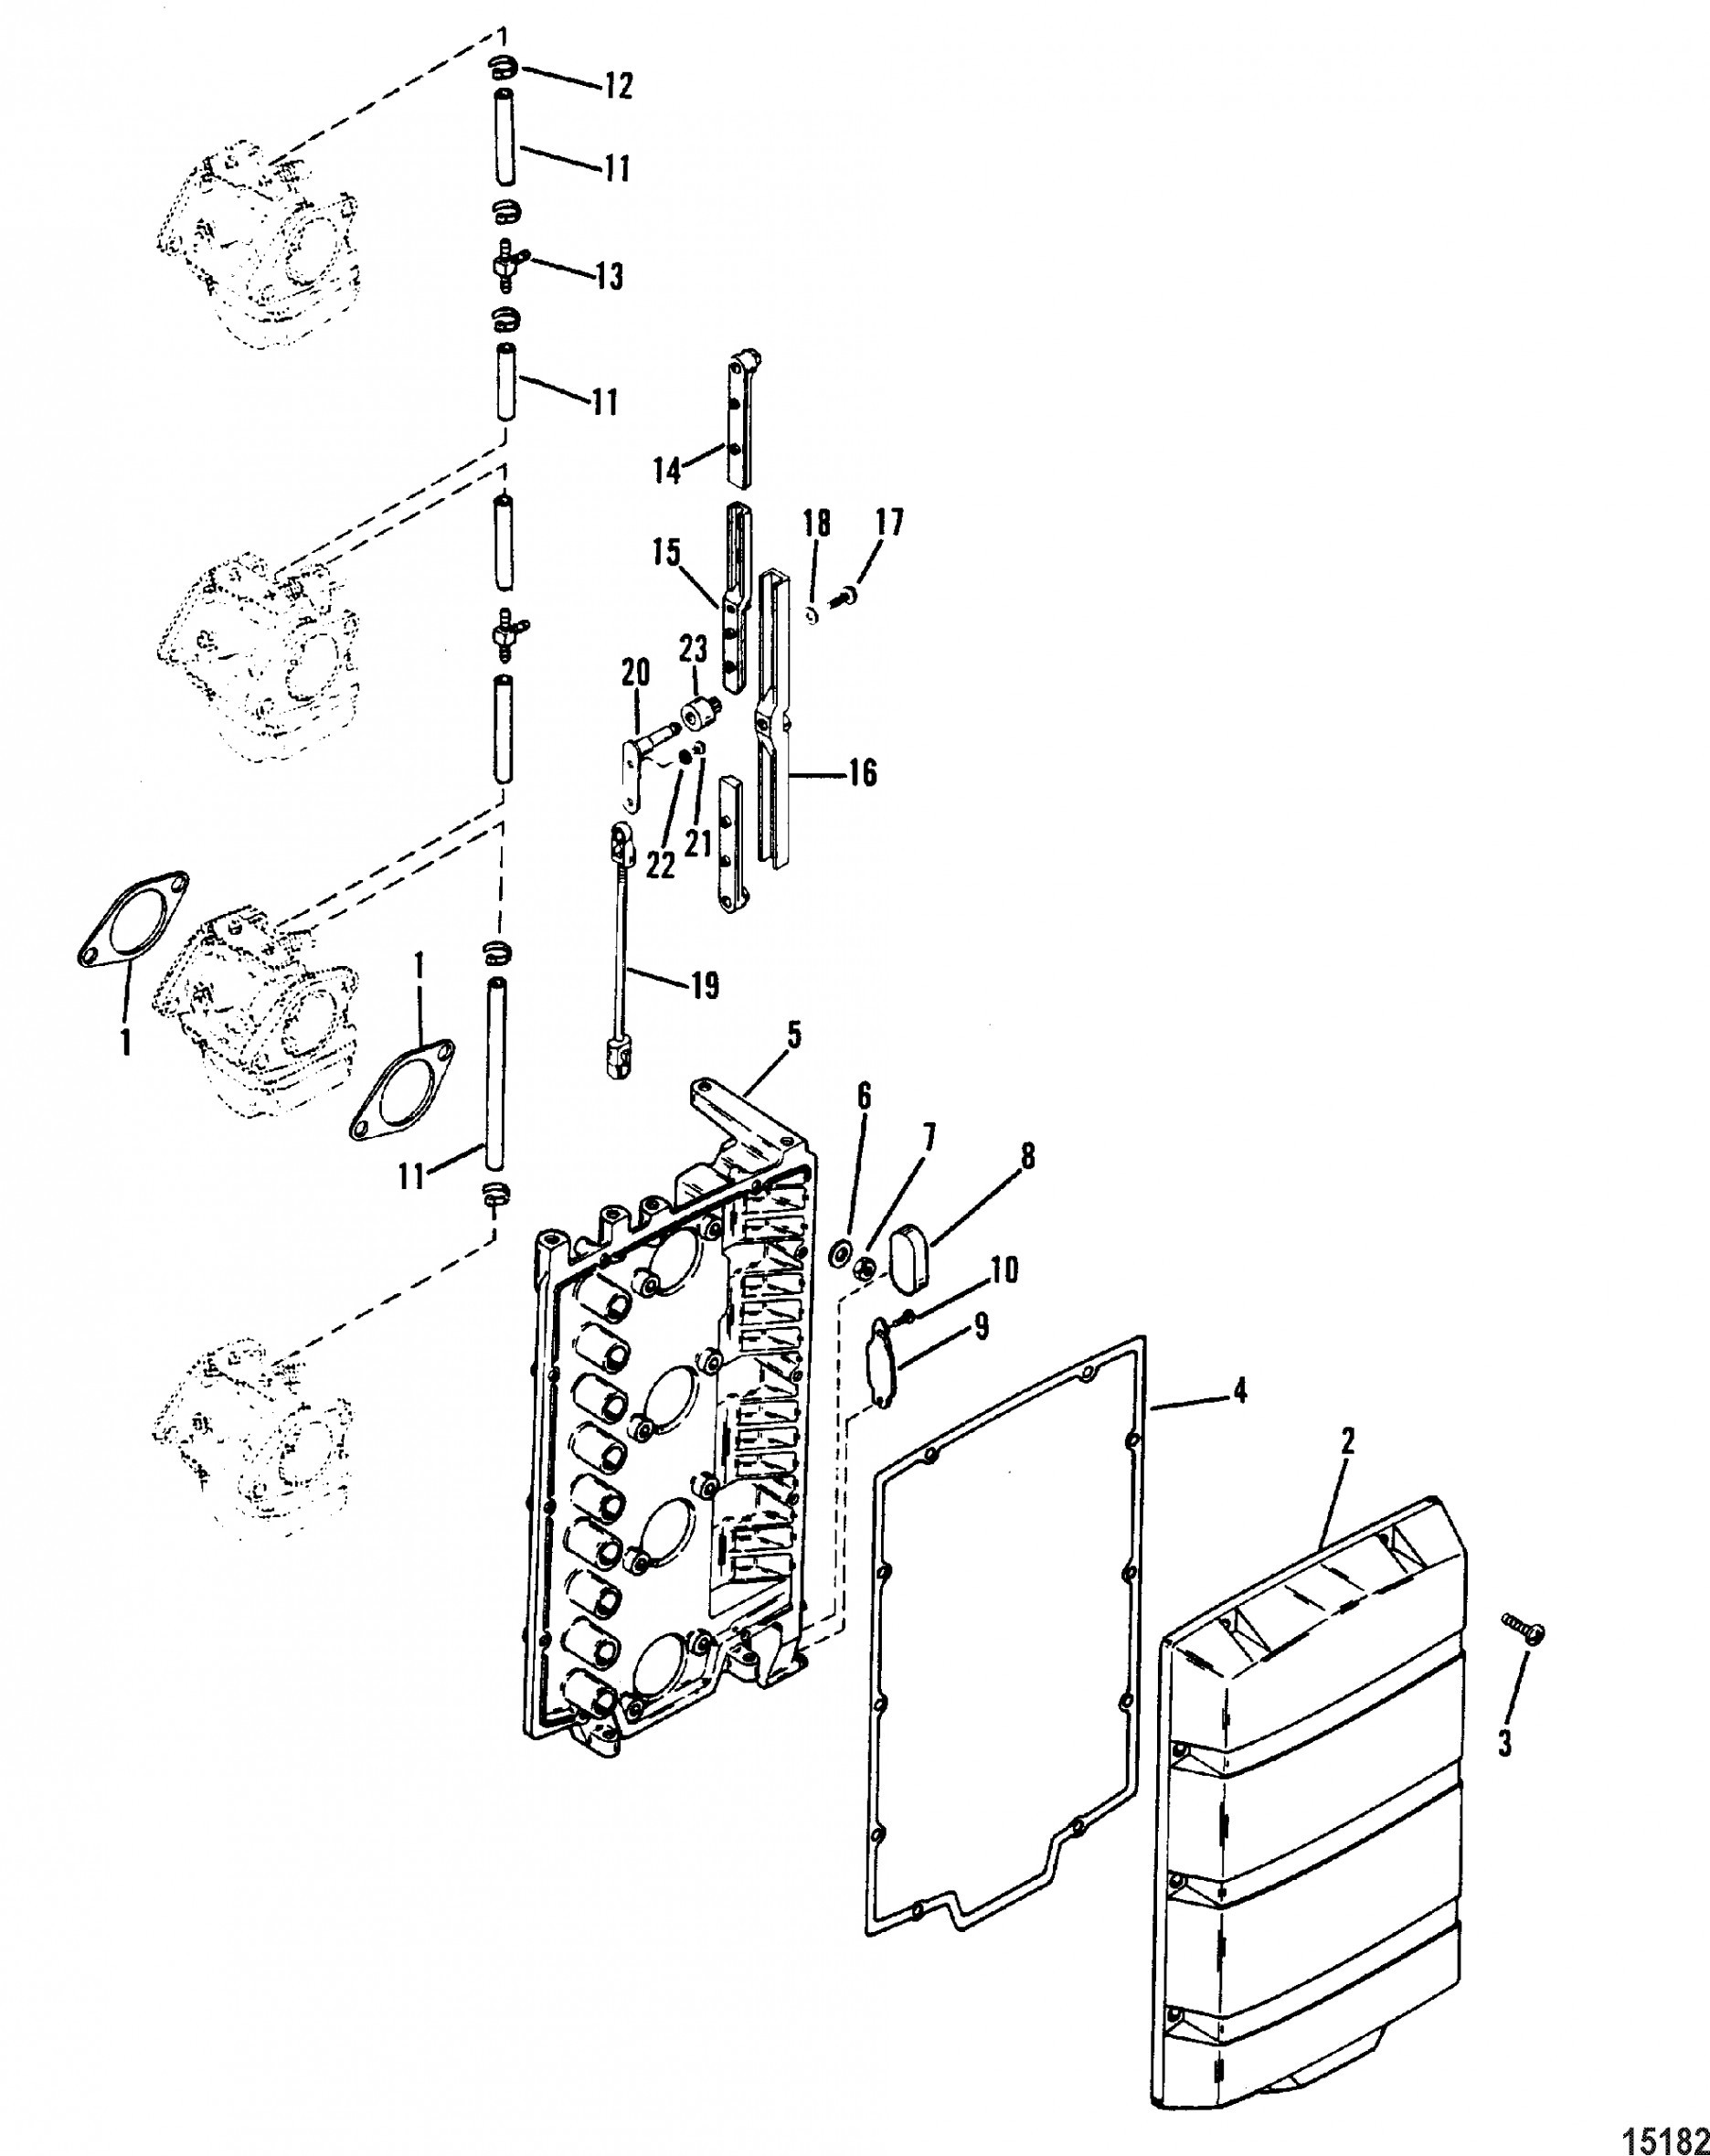 hight resolution of mercury outboard engine diagram mercury outboard motor parts diagram mercury mercury 115 4 cyl of